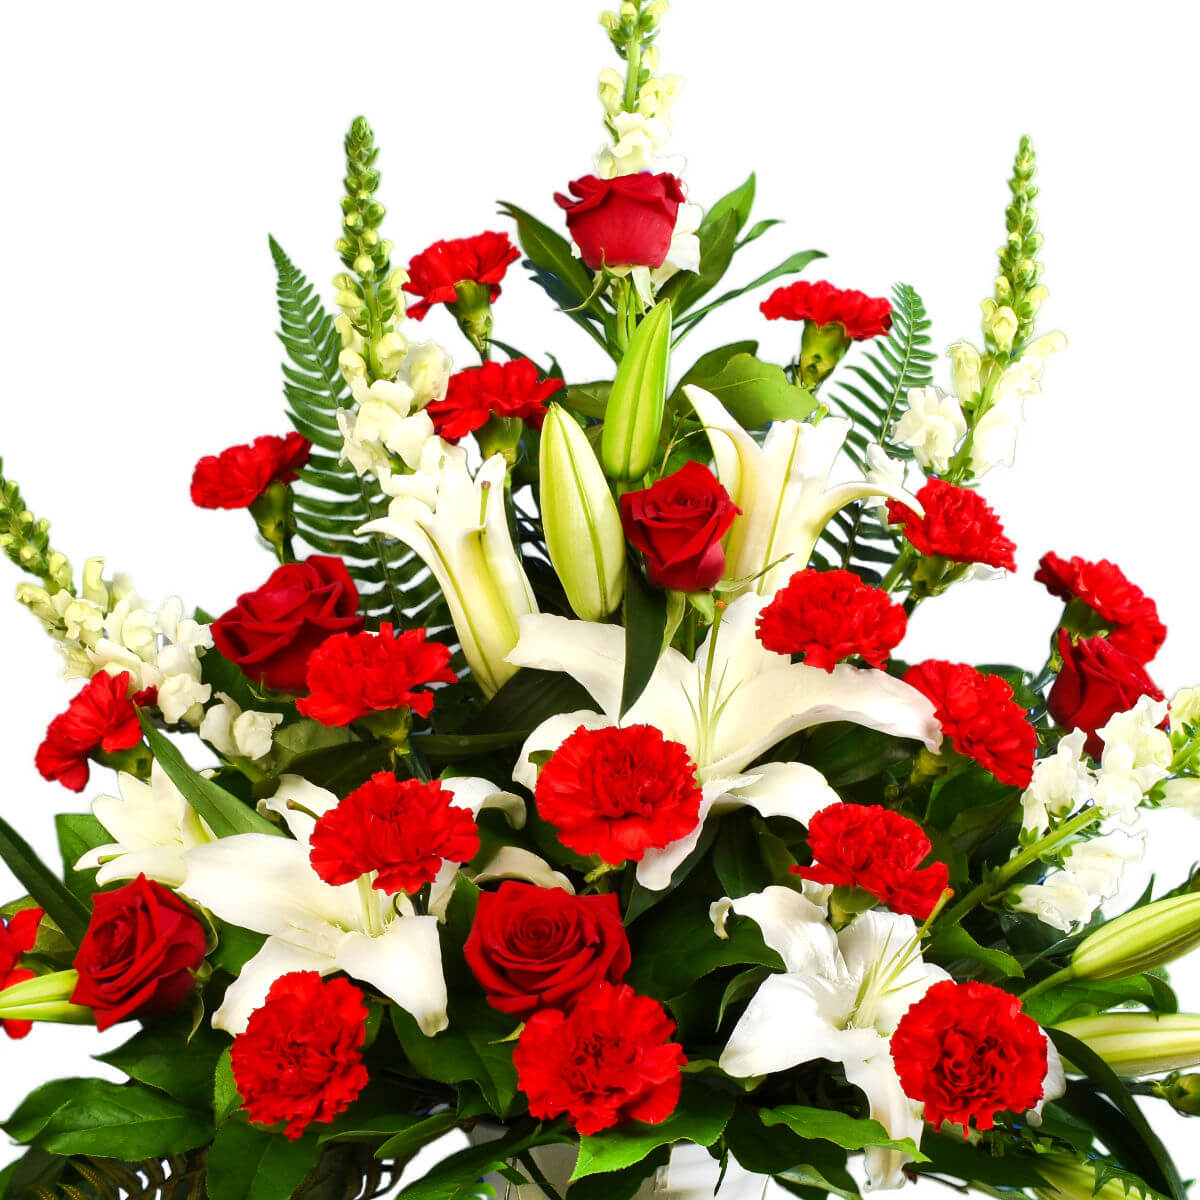 Best Funeral Flower Arrangements in Metro - Vancouver | Same Day Funeral Flower Delivery Adele Rae Florist